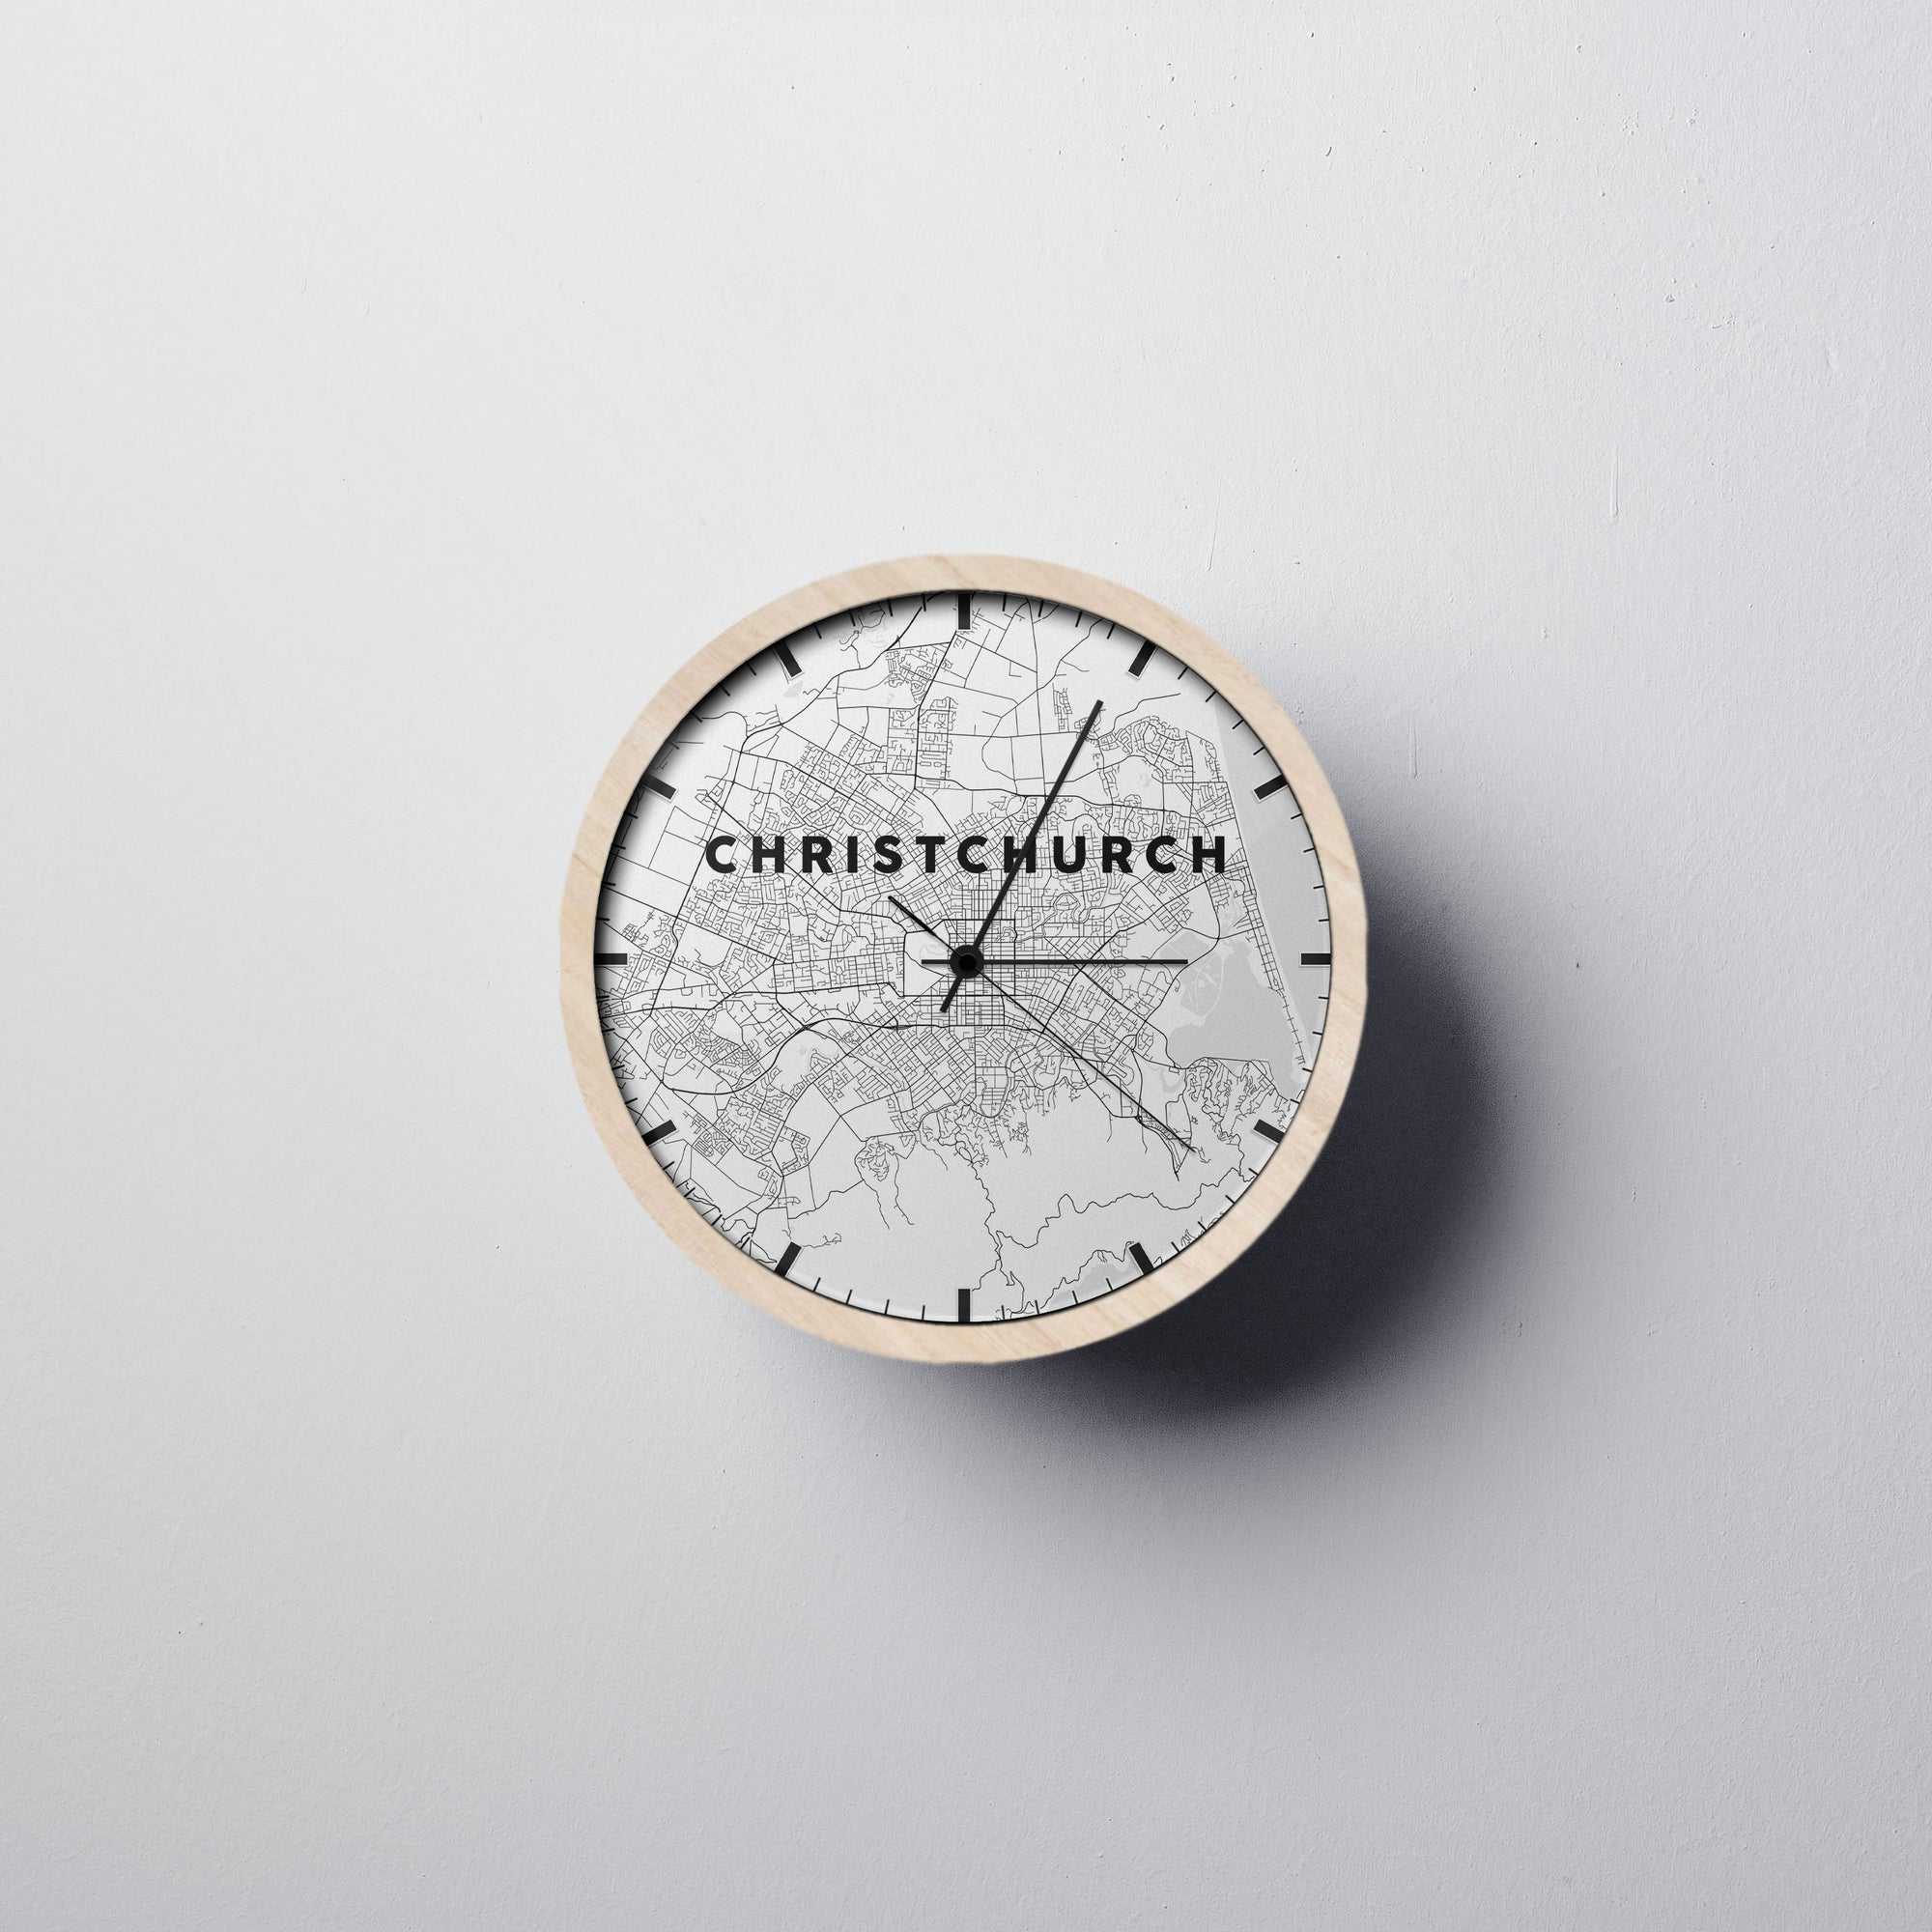 Christchurch Wall Clock - Point Two Design